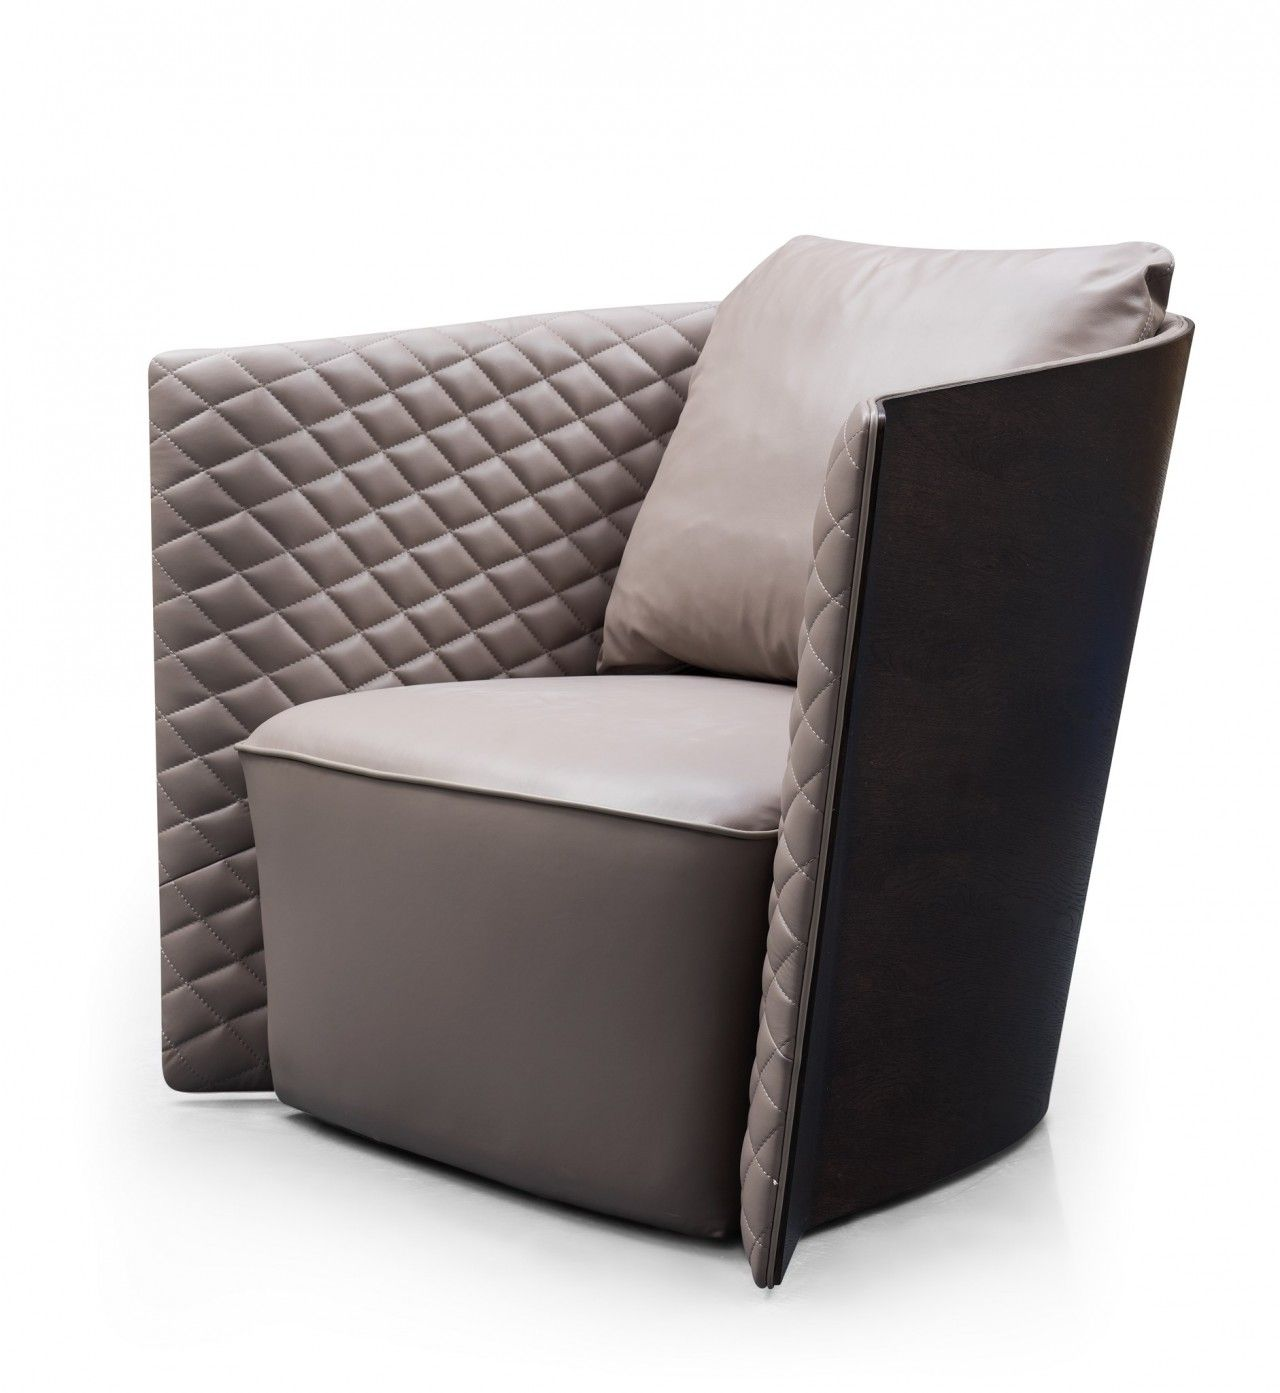 Lauren Chair Muebles Pinterest Armchairs Luxury Chairs And  # Muebles Hollywood